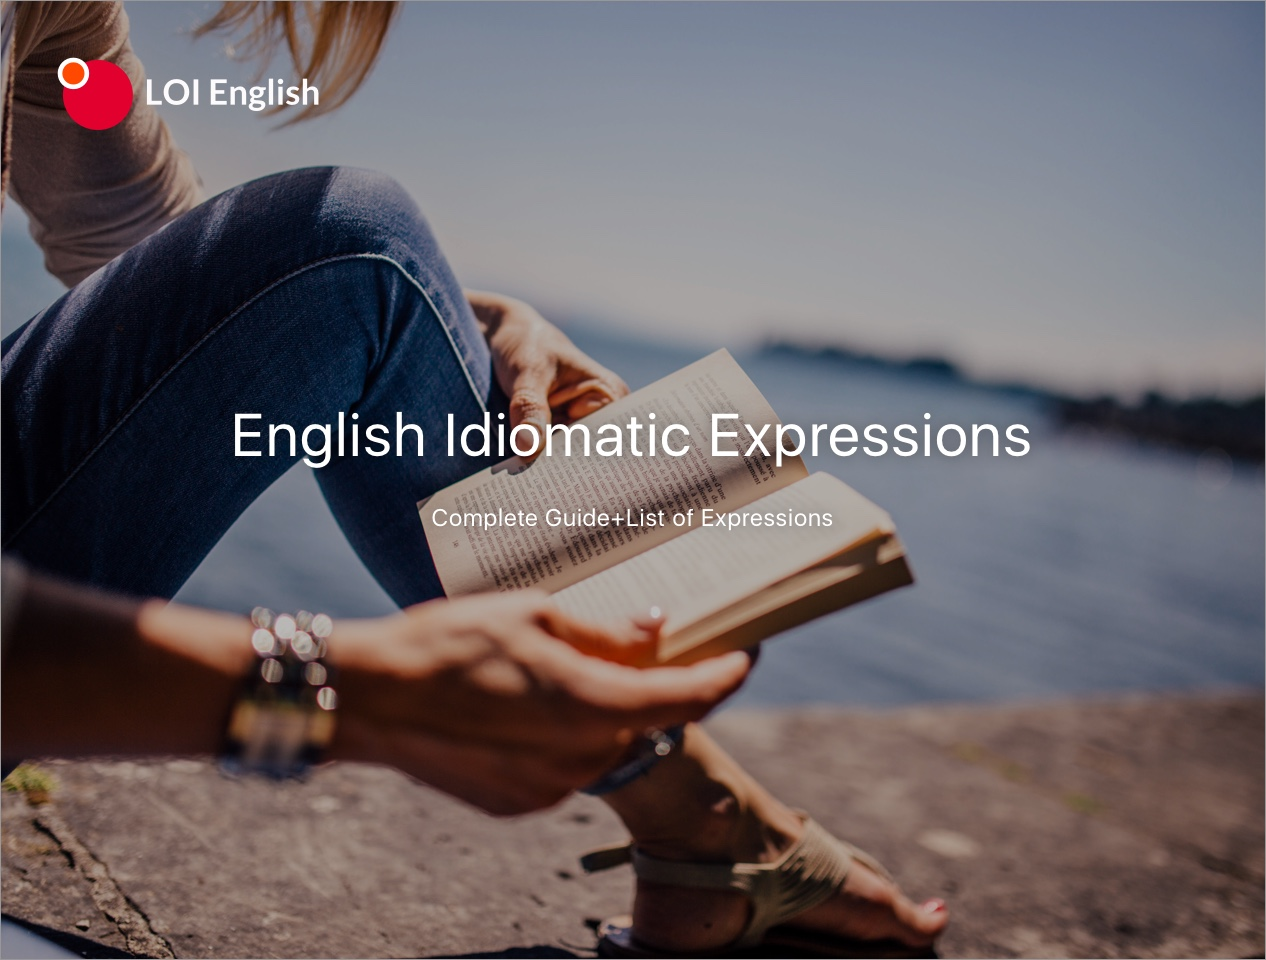 Learn 100+ Typical English Idiomatic Expressions [NO Memorizing